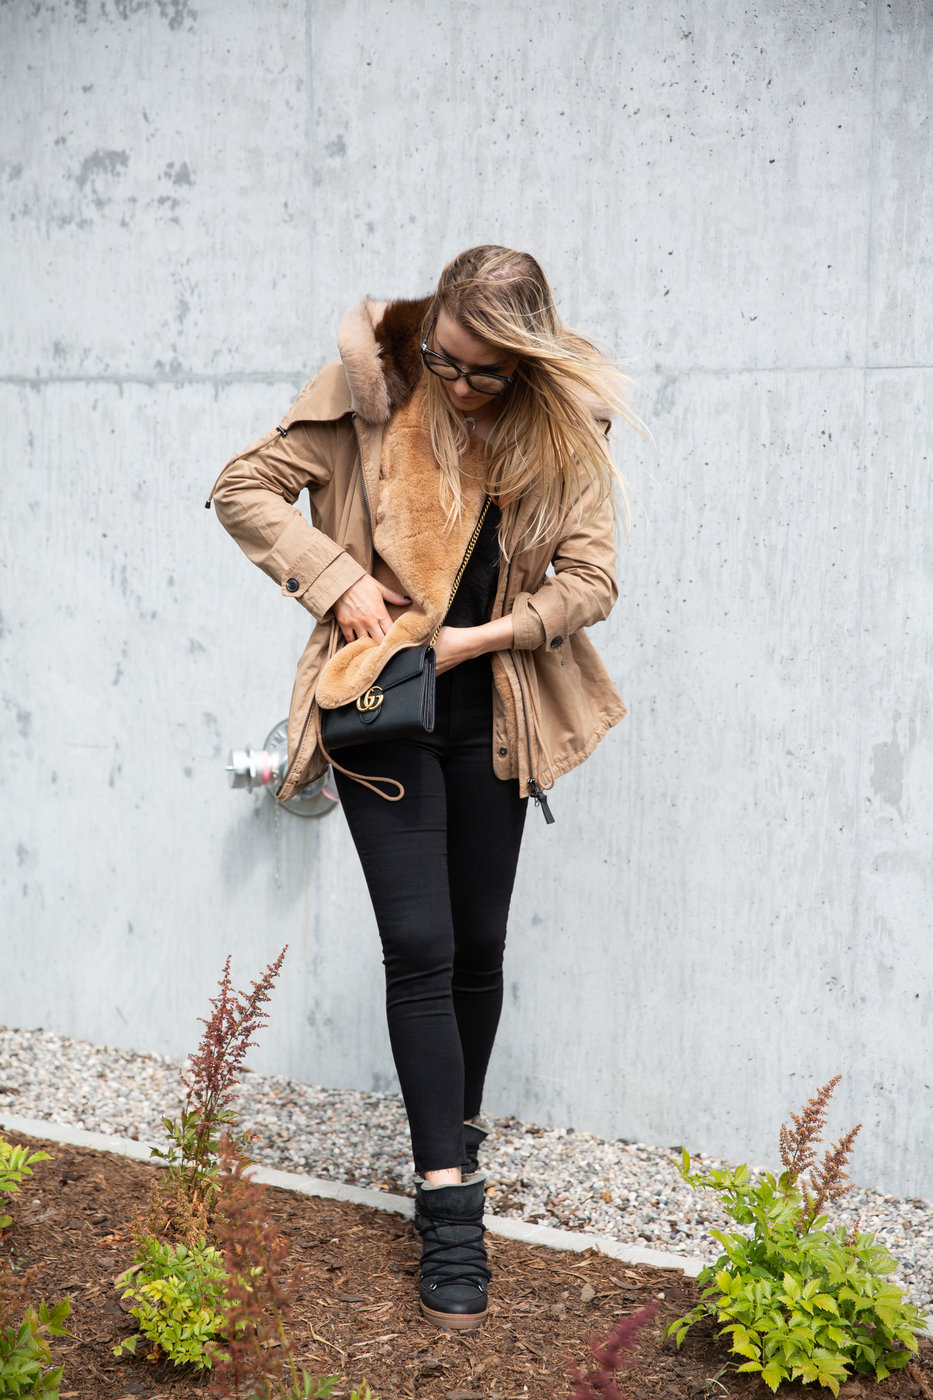 1 person, cool fall outfit